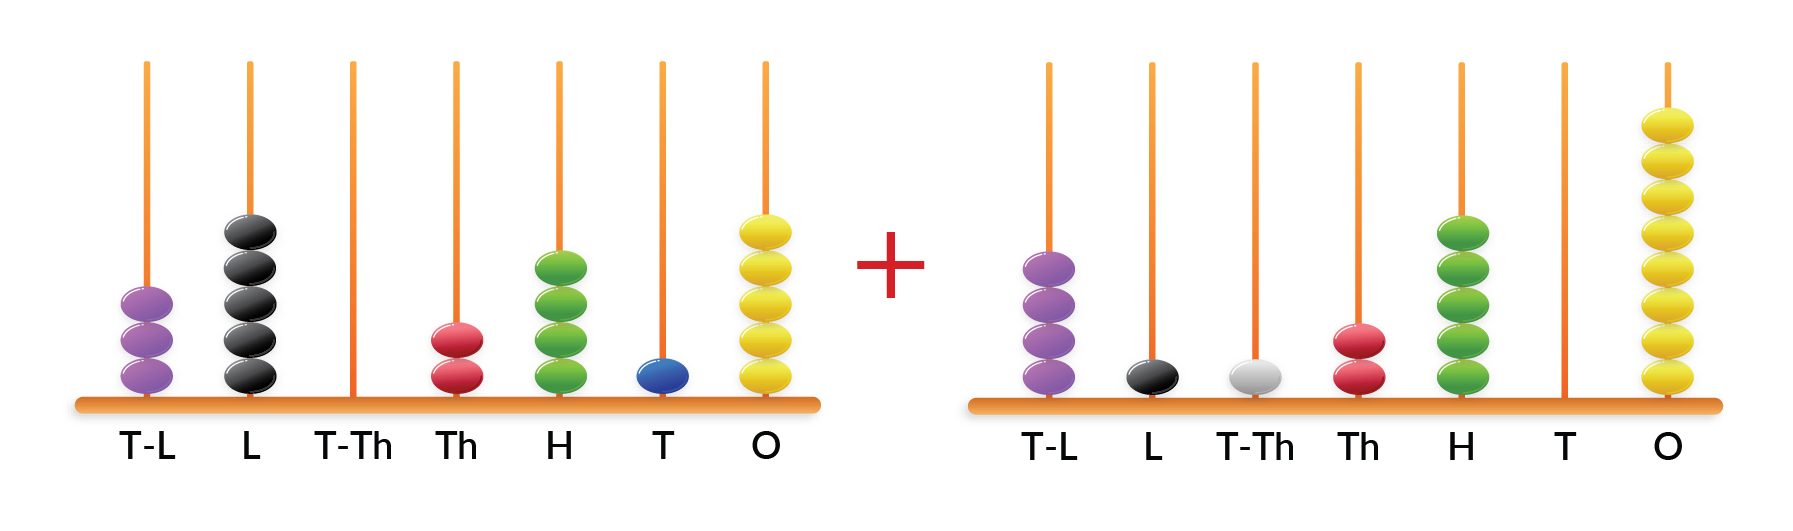 Add Two numbers shown on an abacus.